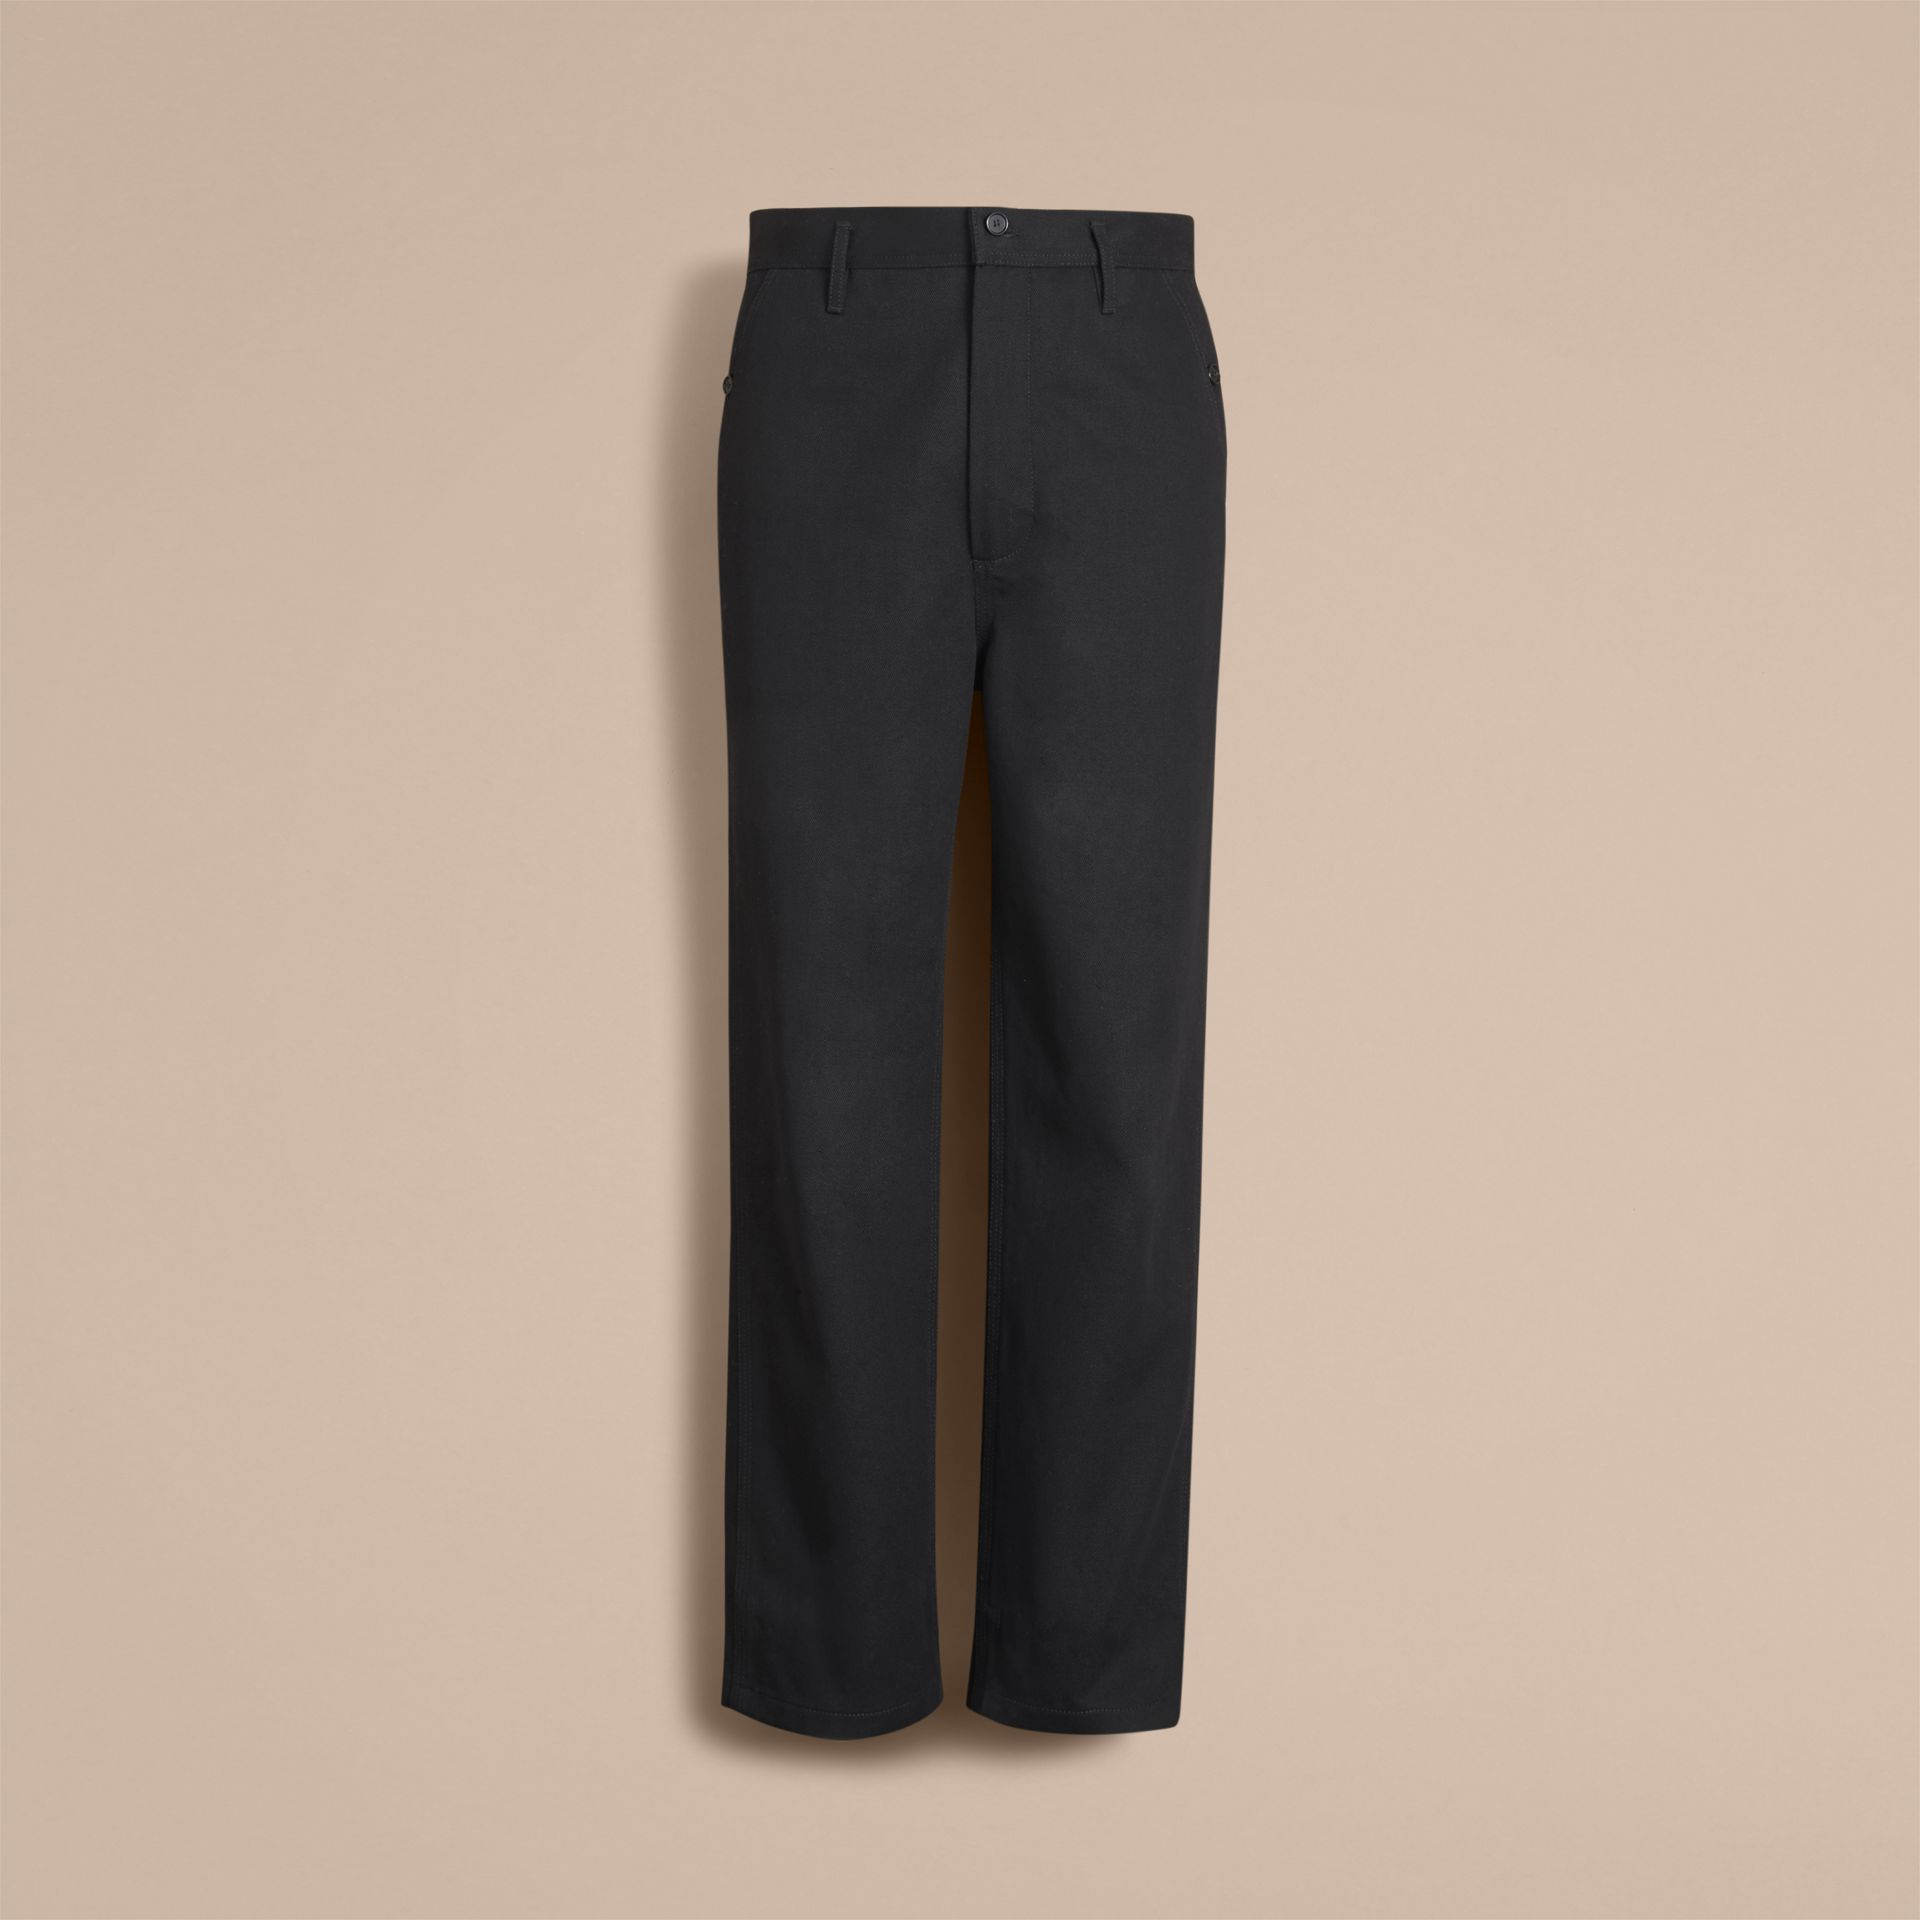 Pantalon de travail court en sergé de coton - Homme | Burberry - photo de la galerie 4